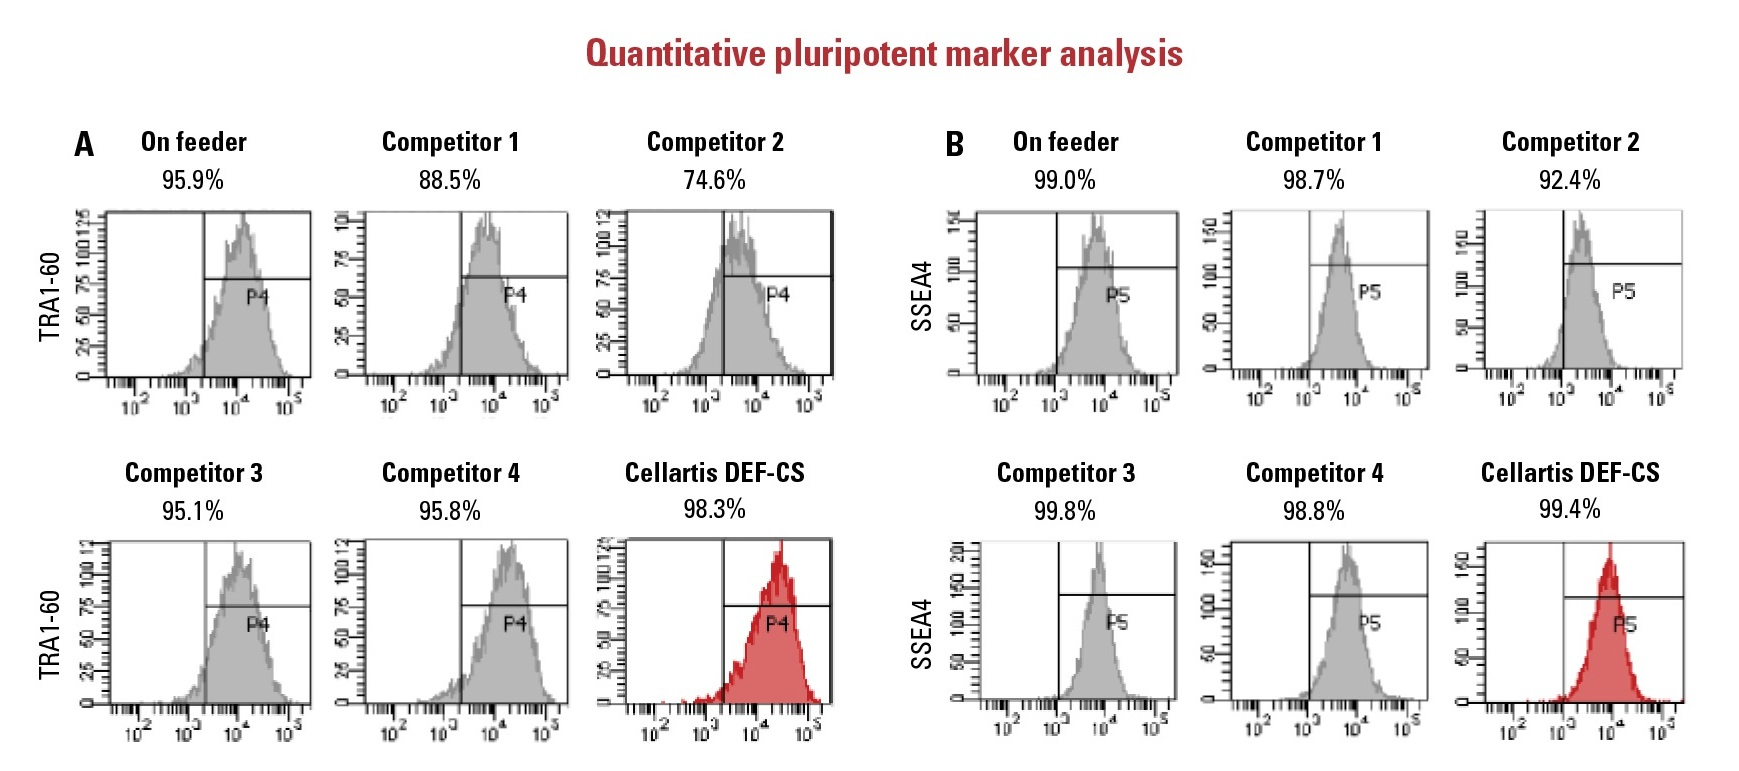 Human induced pluripotent stem cells (iPS) cells grown in the Cellartis DEF-CS Culture System have the highest proportion and intensity of markers of pluripotency